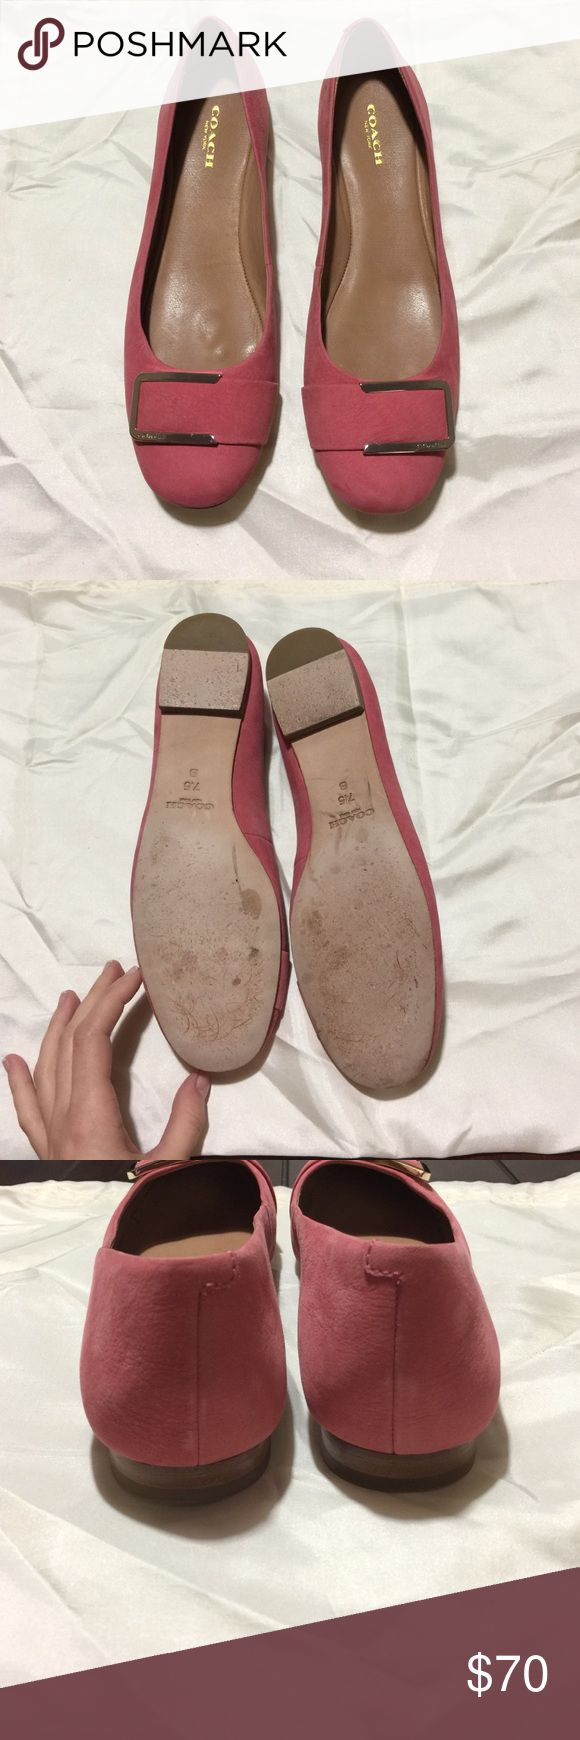 Coach flats Pink Unique Coach flats, minor wear. Any questions just ask! Coach Shoes Flats & Loafers